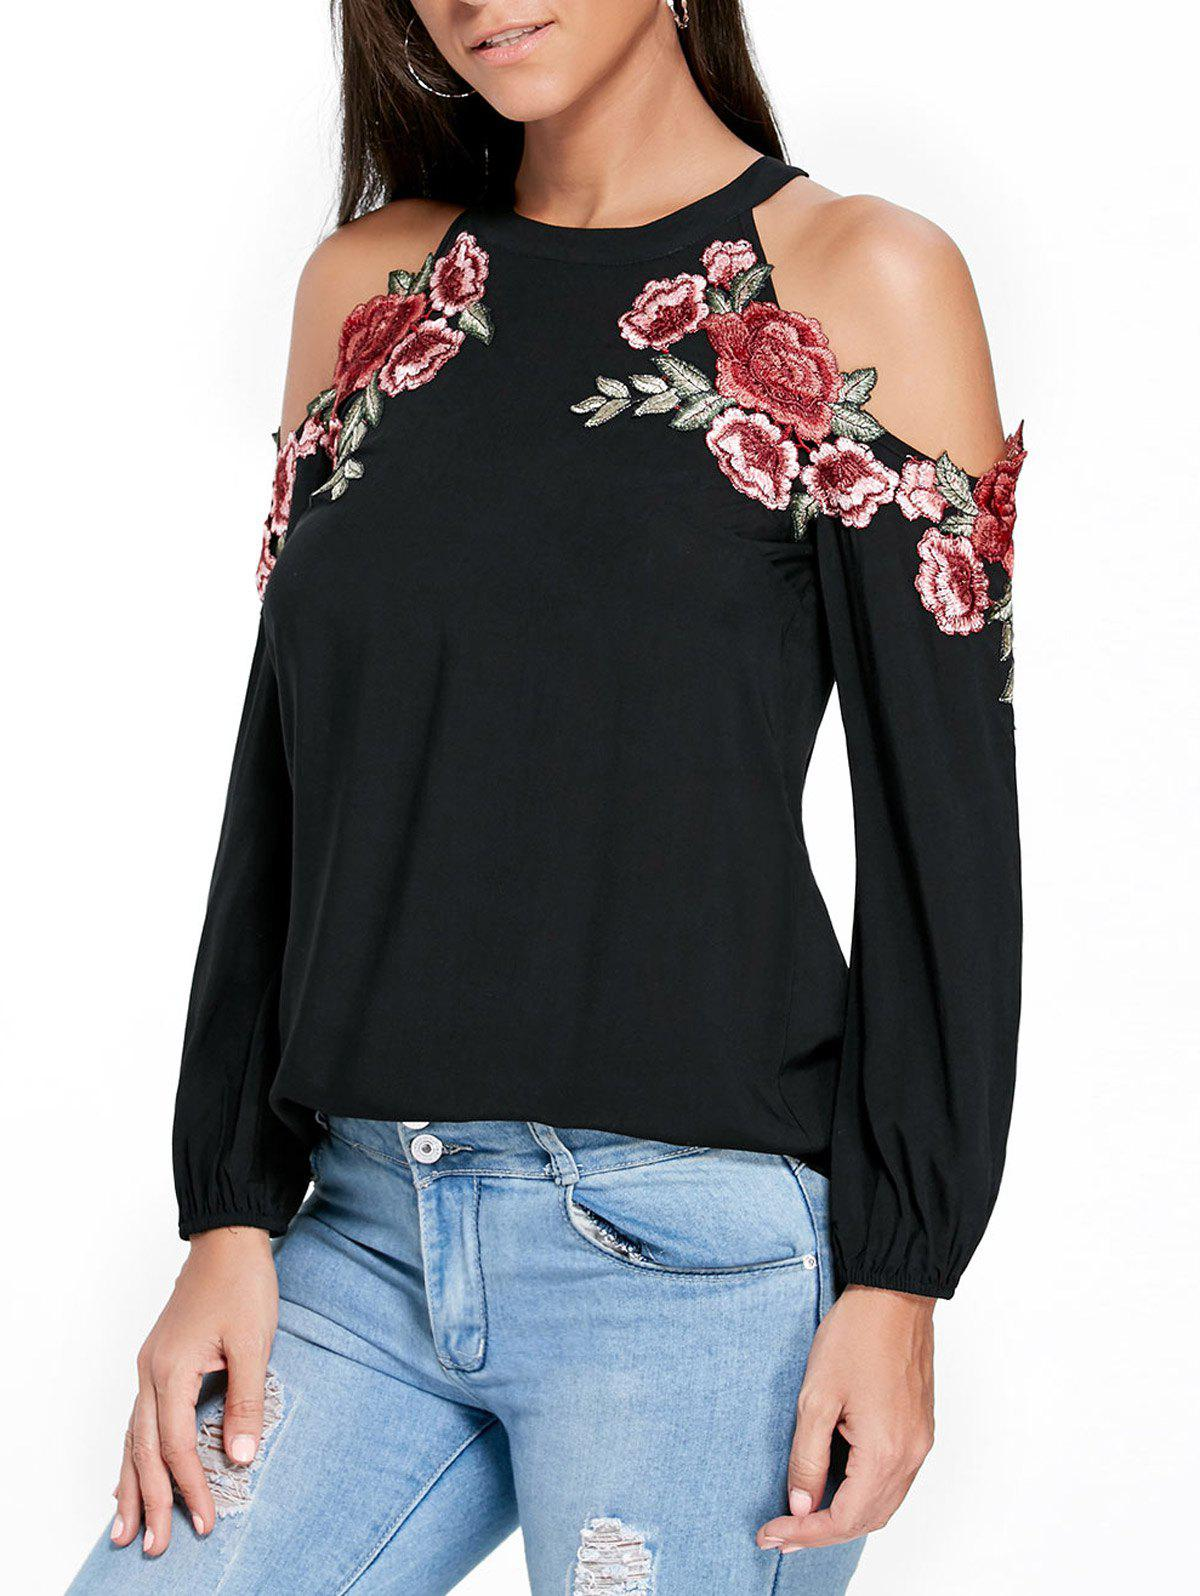 Applique Embroidery Open Shoulder TopWOMEN<br><br>Size: 2XL; Color: BLACK; Material: Rayon; Shirt Length: Regular; Sleeve Length: Full; Collar: Crew Neck; Style: Casual; Embellishment: Appliques,Embroidery; Pattern Type: Floral; Season: Fall,Spring,Summer; Weight: 0.2100kg; Package Contents: 1 x Top;